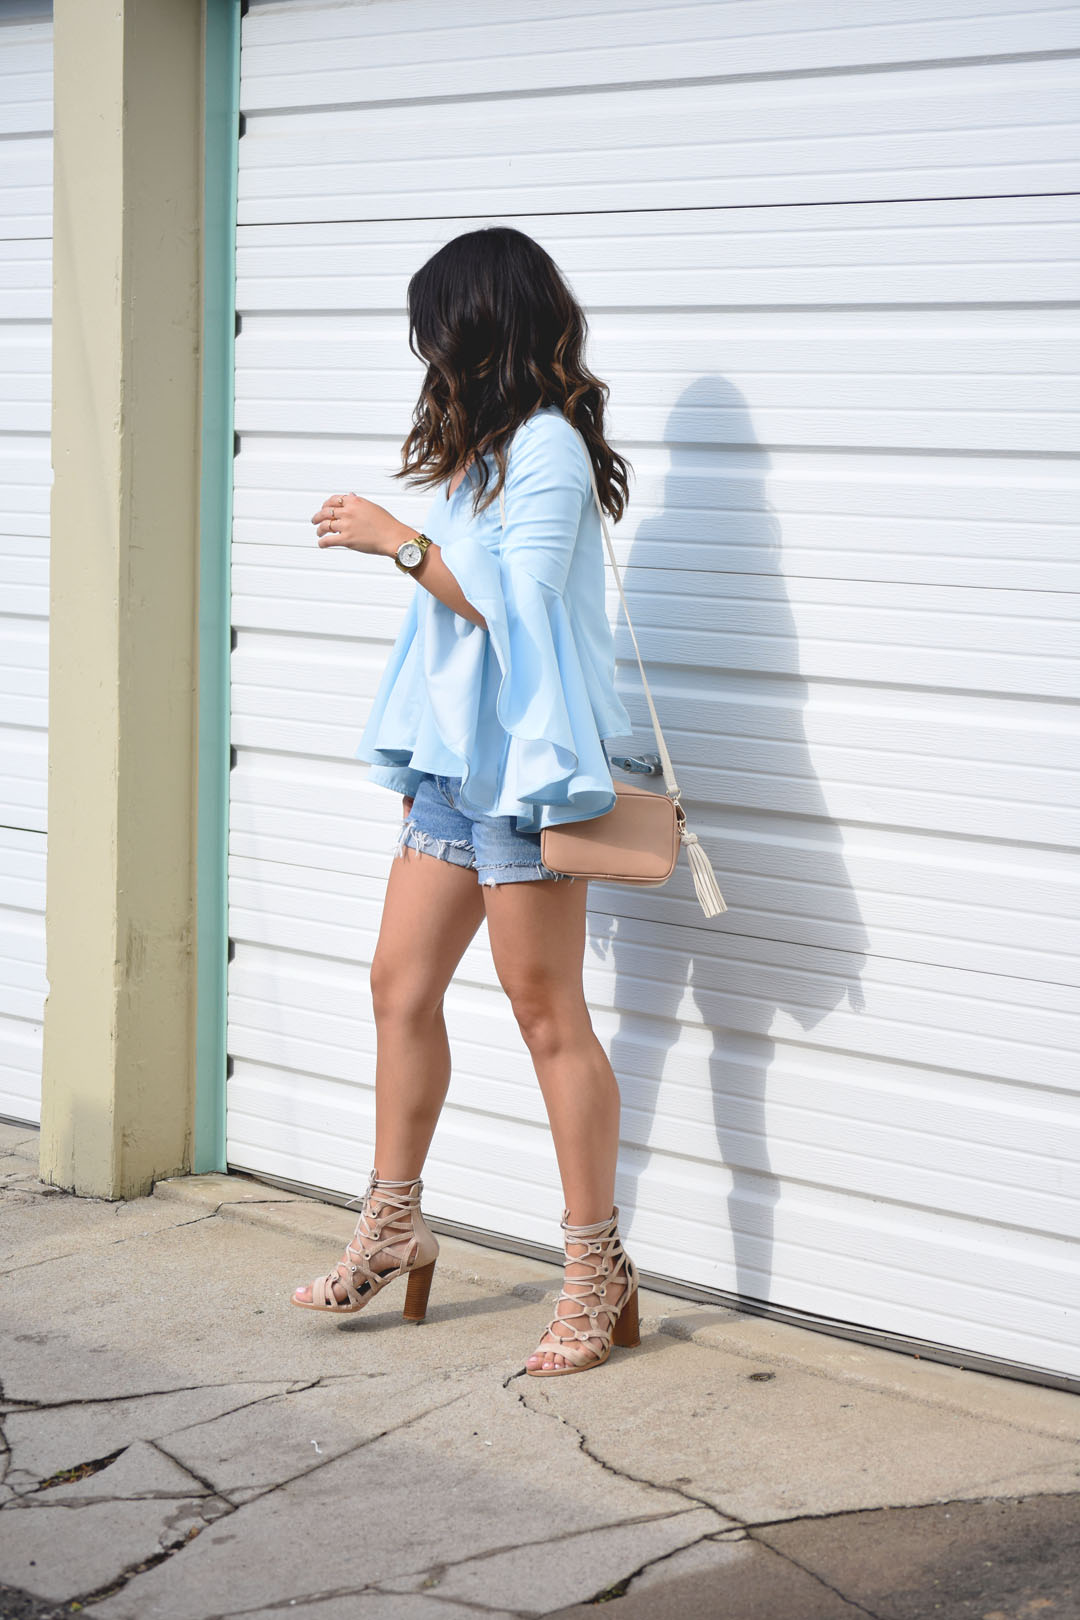 Carolina Hellal of Chic Talk wearing the serene blue top with bell sleeves by Chicwish, vintage denim shorts and Lasula Boutique lace up sandals.